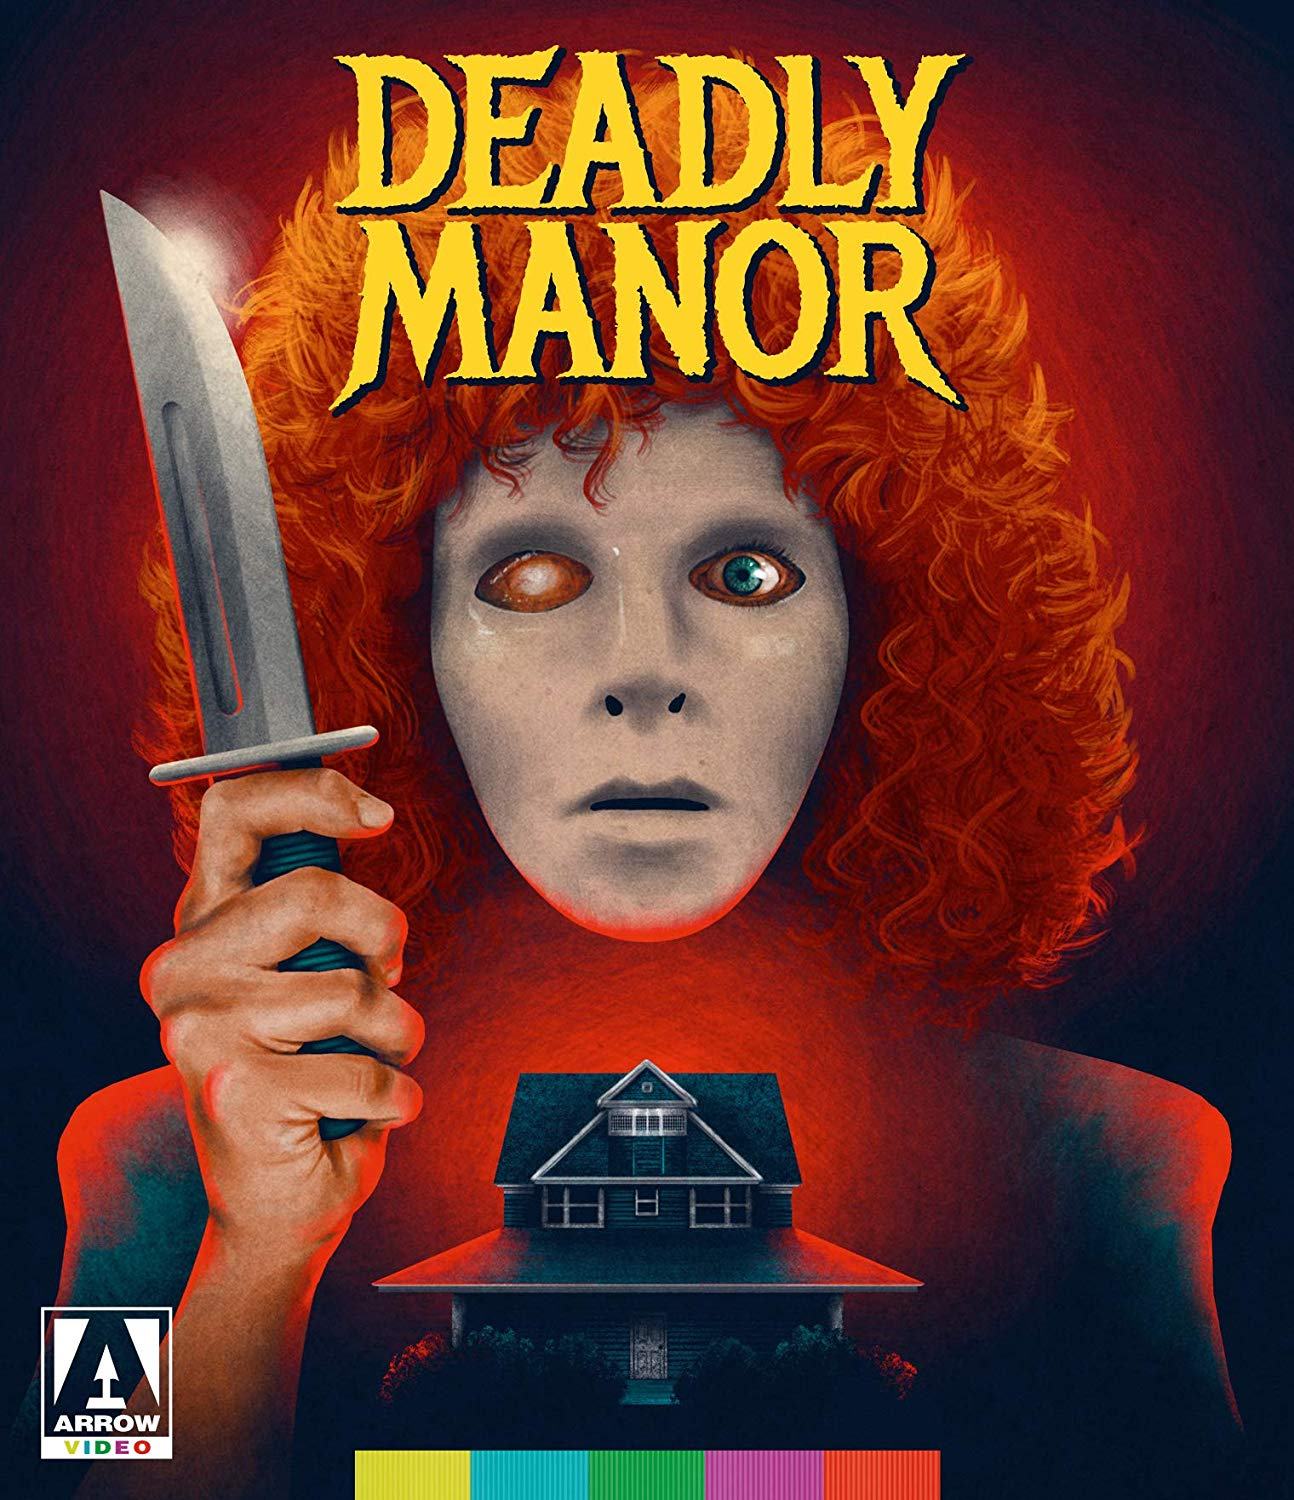 Deadly Manor Blu-ray review